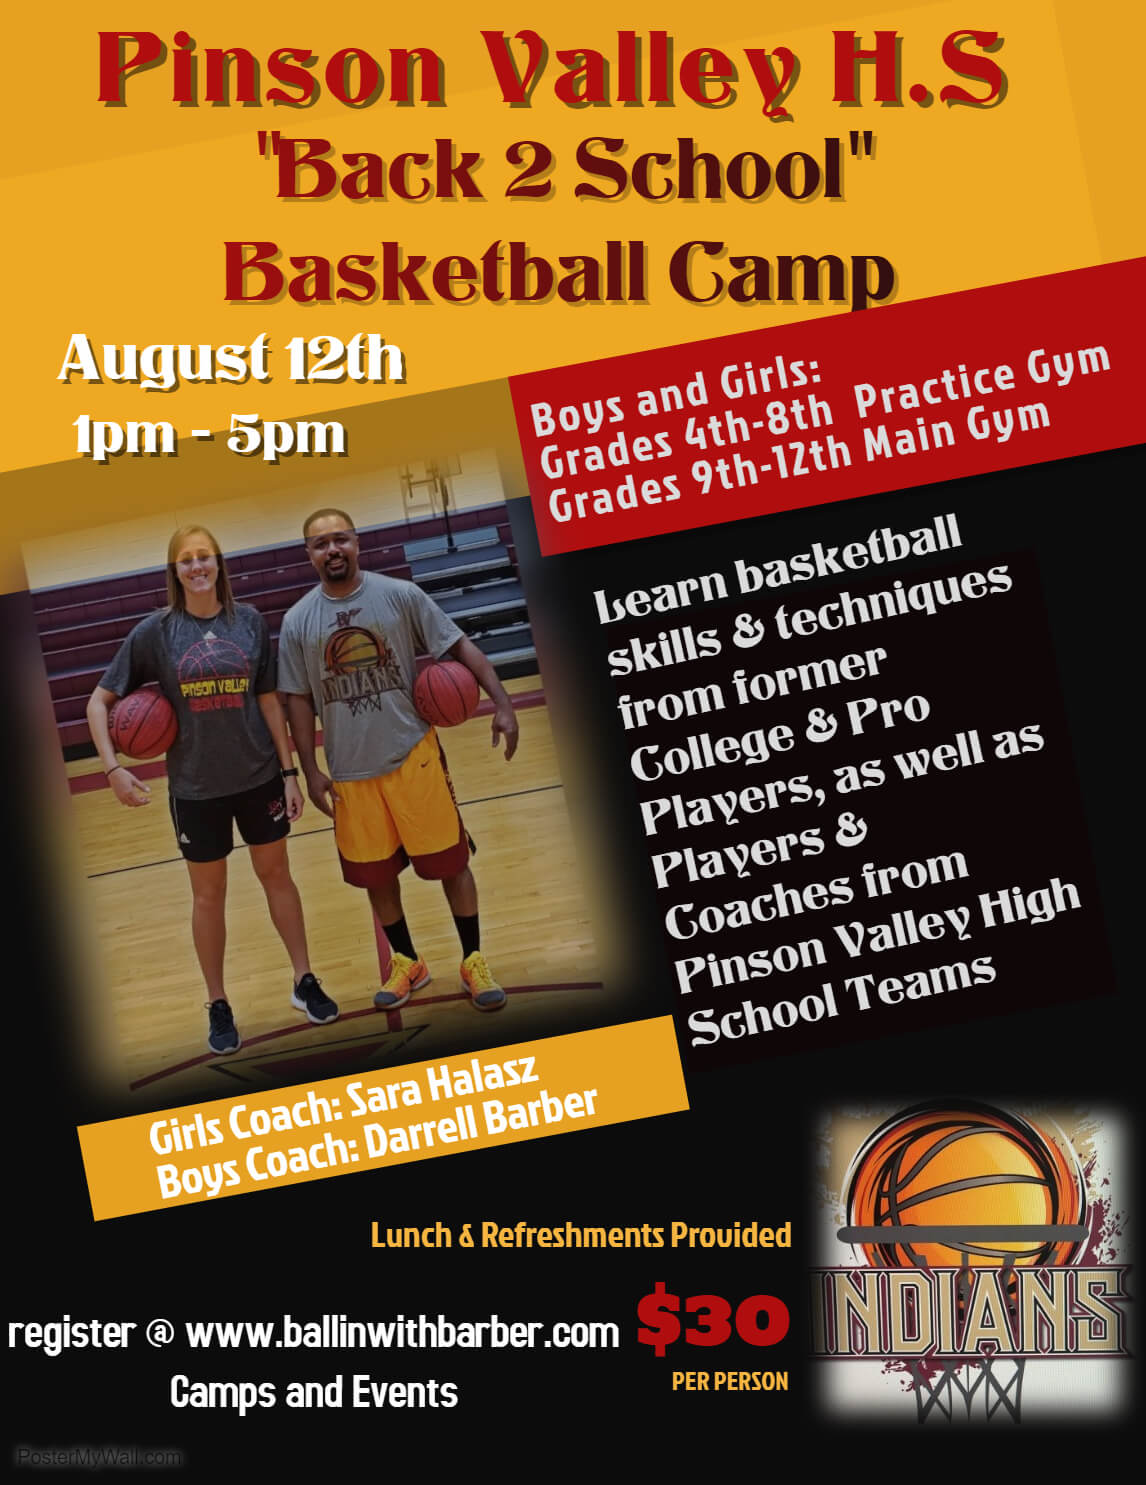 002 Template Ideas Basketball Camp Flyer Copy Of Made With For Basketball Camp Brochure Template